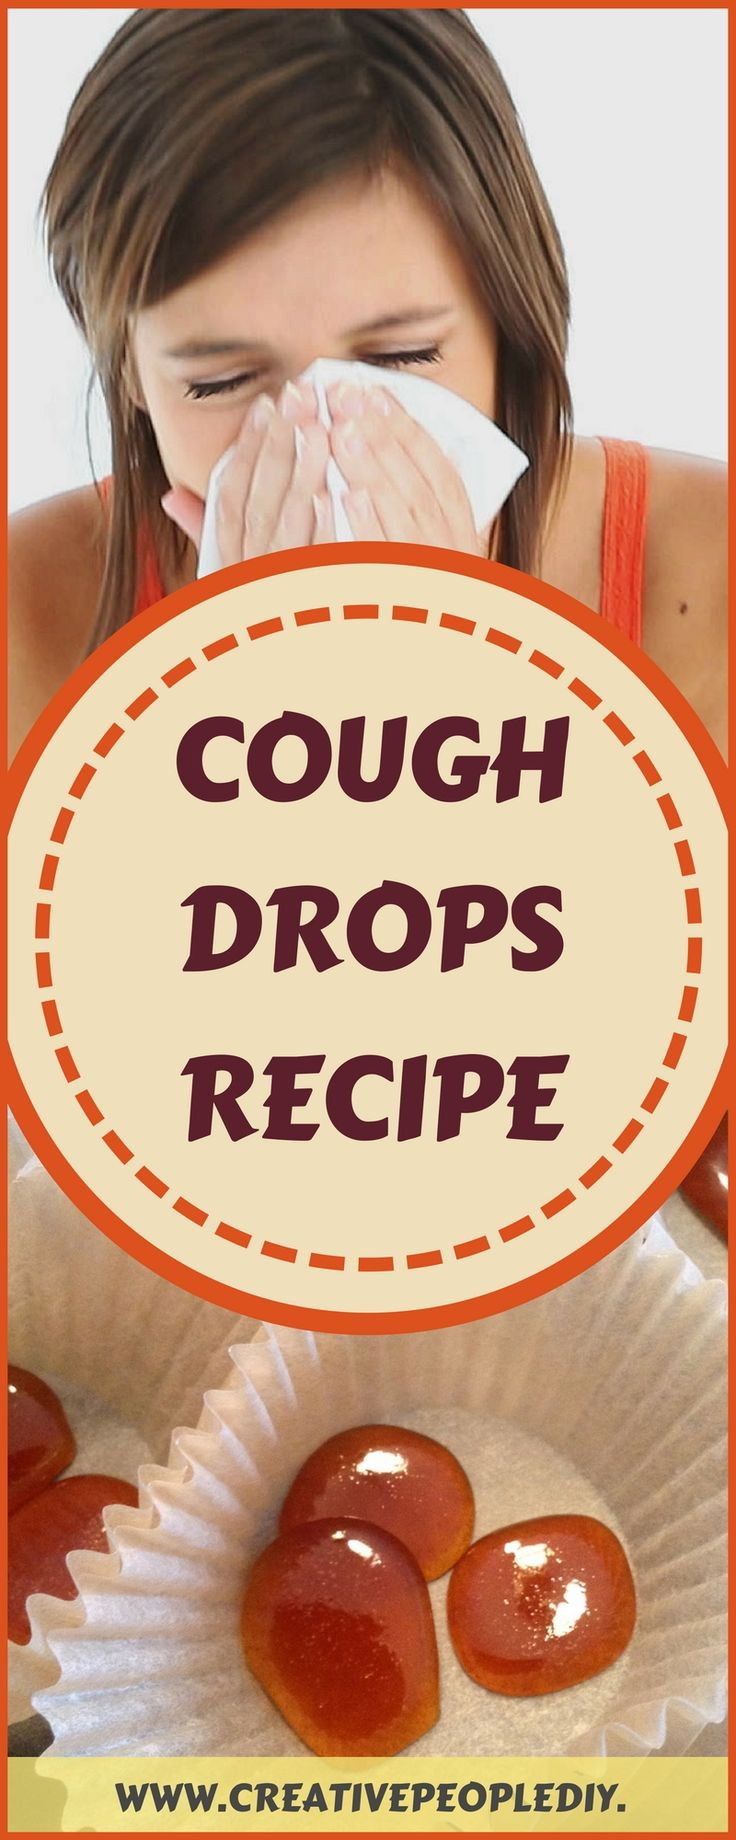 MAKE THIS SIMPLE COUGH DROPS AND STOP COLD INSTANTLY